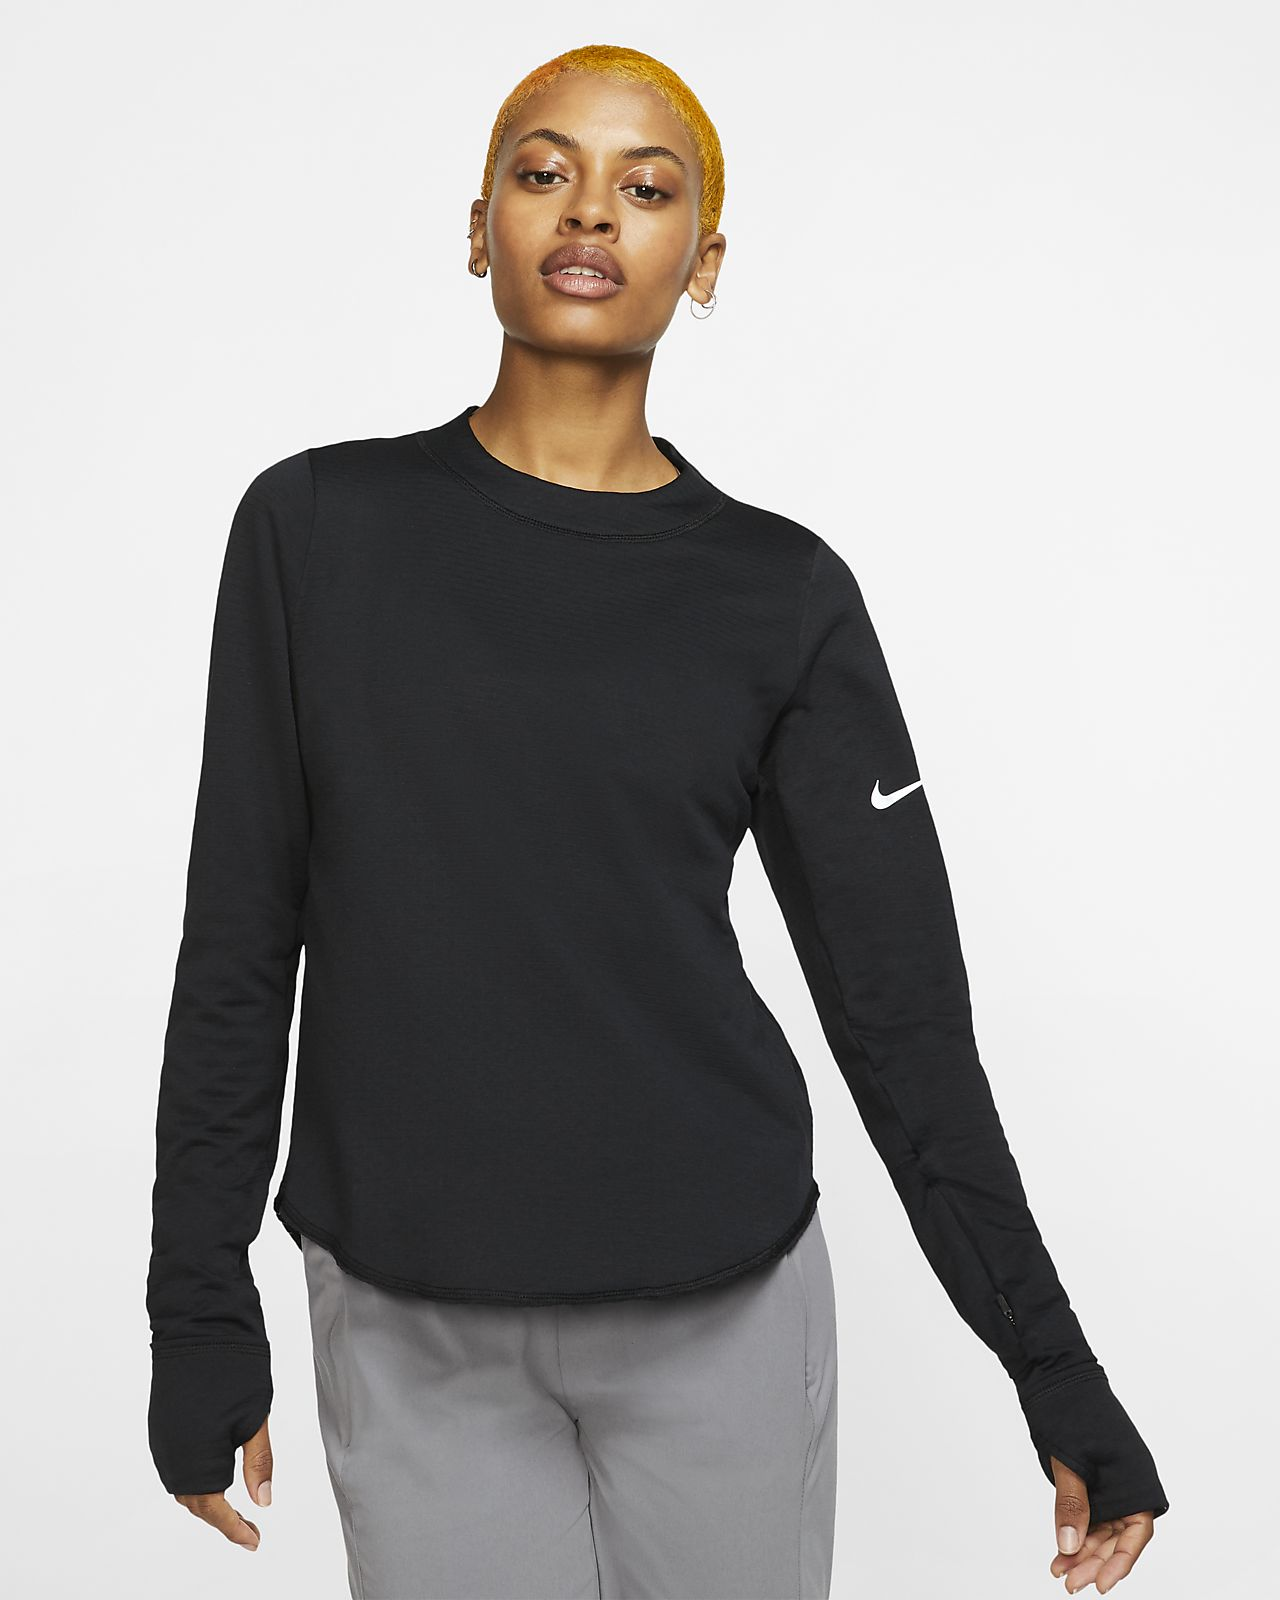 Nike Sphere Women's Long-Sleeve Running Top